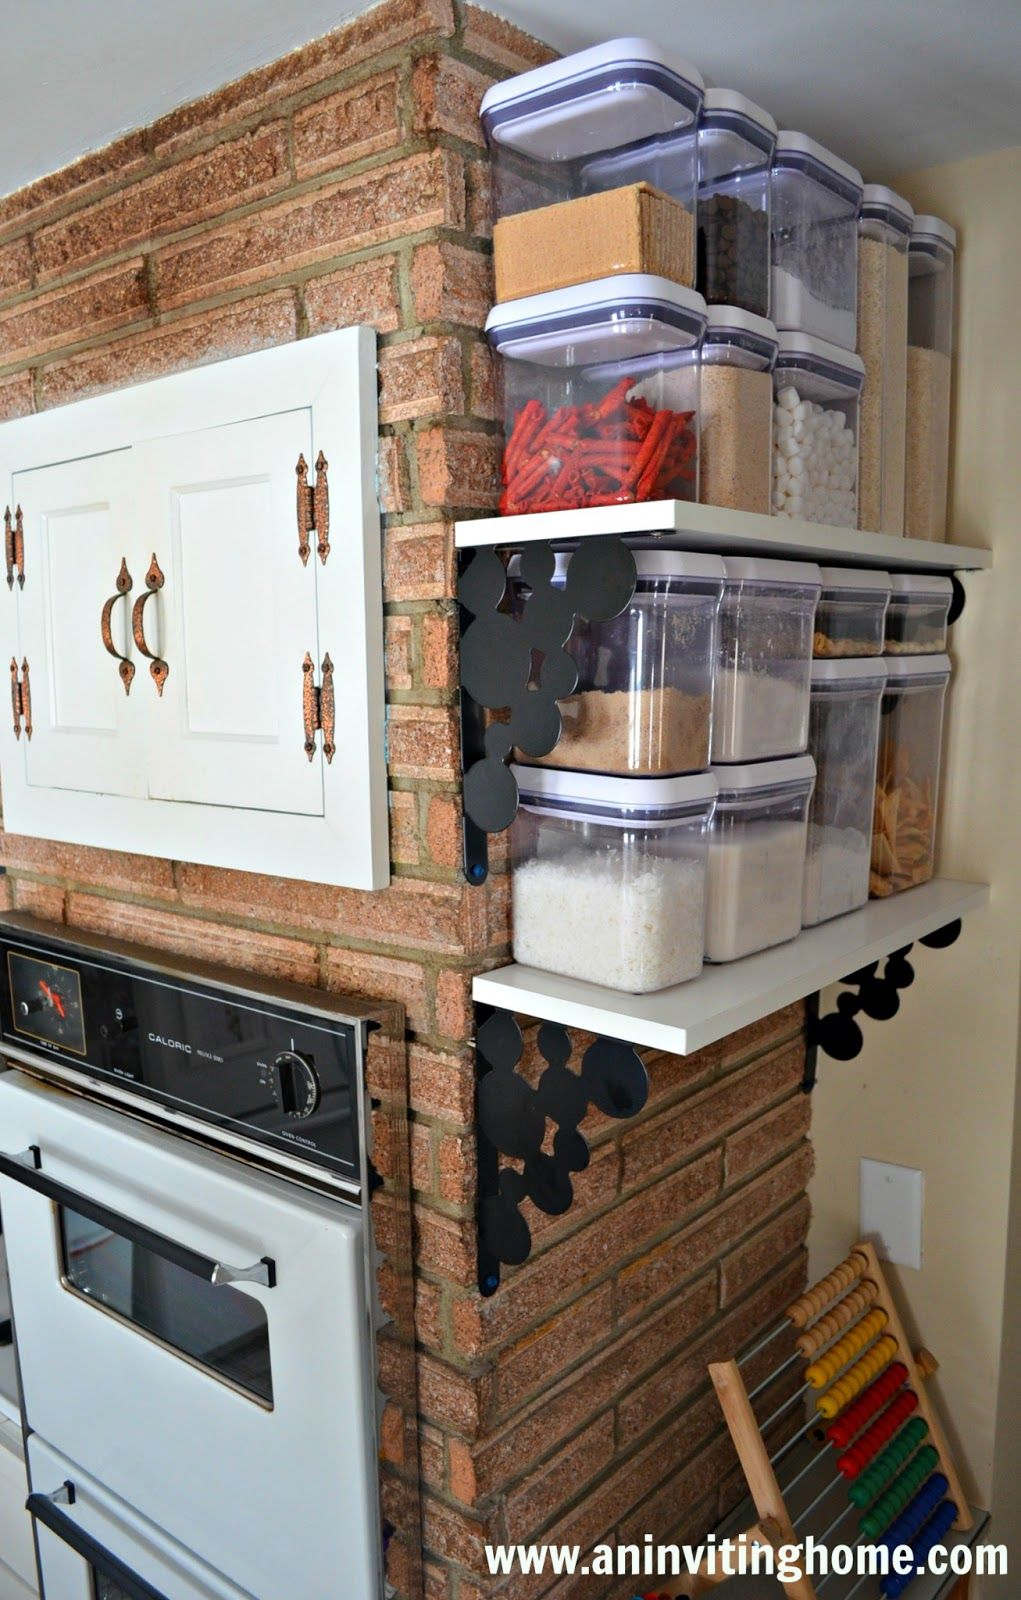 Best No Pantry But Wall Mount Shelves Allow For Food Storage 400 x 300